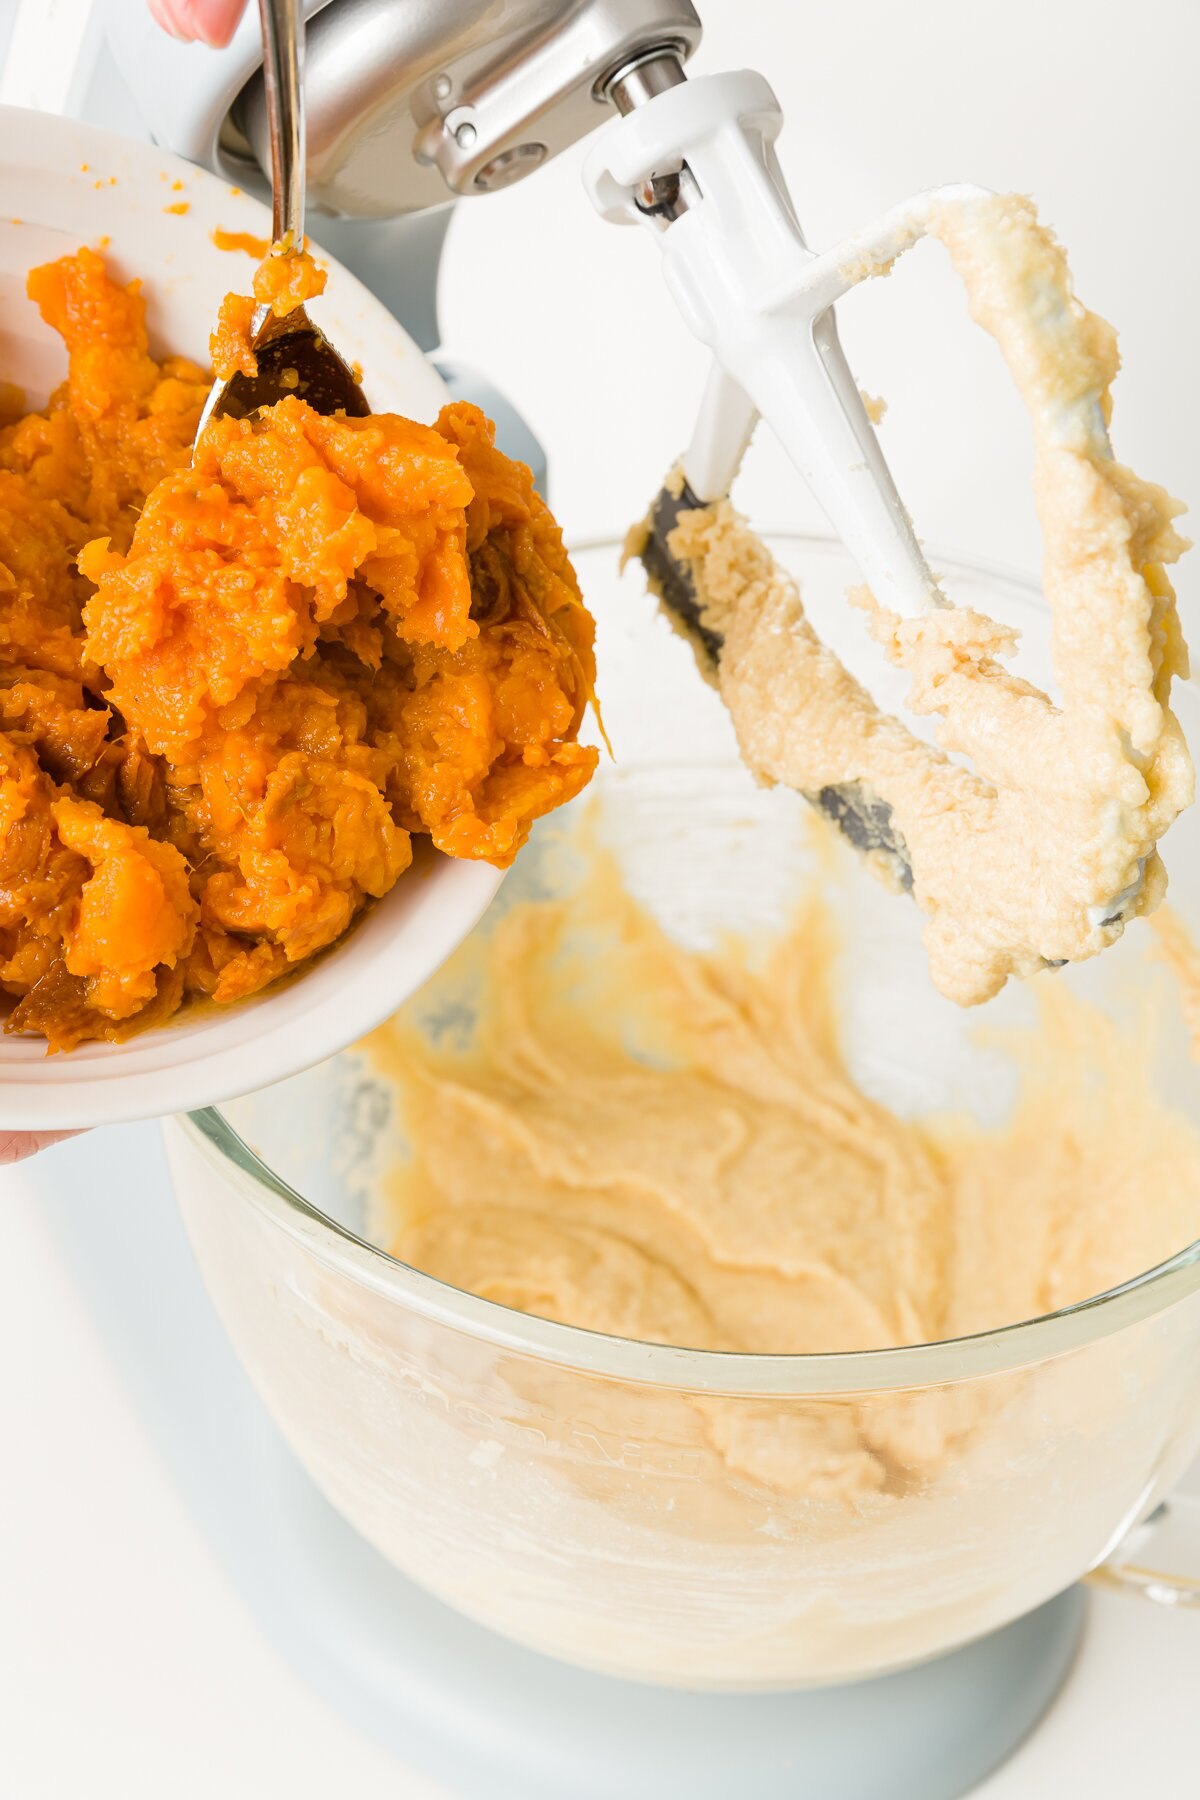 Adding mashed sweet potatoes to a KitchenAid mixer with a blade raised